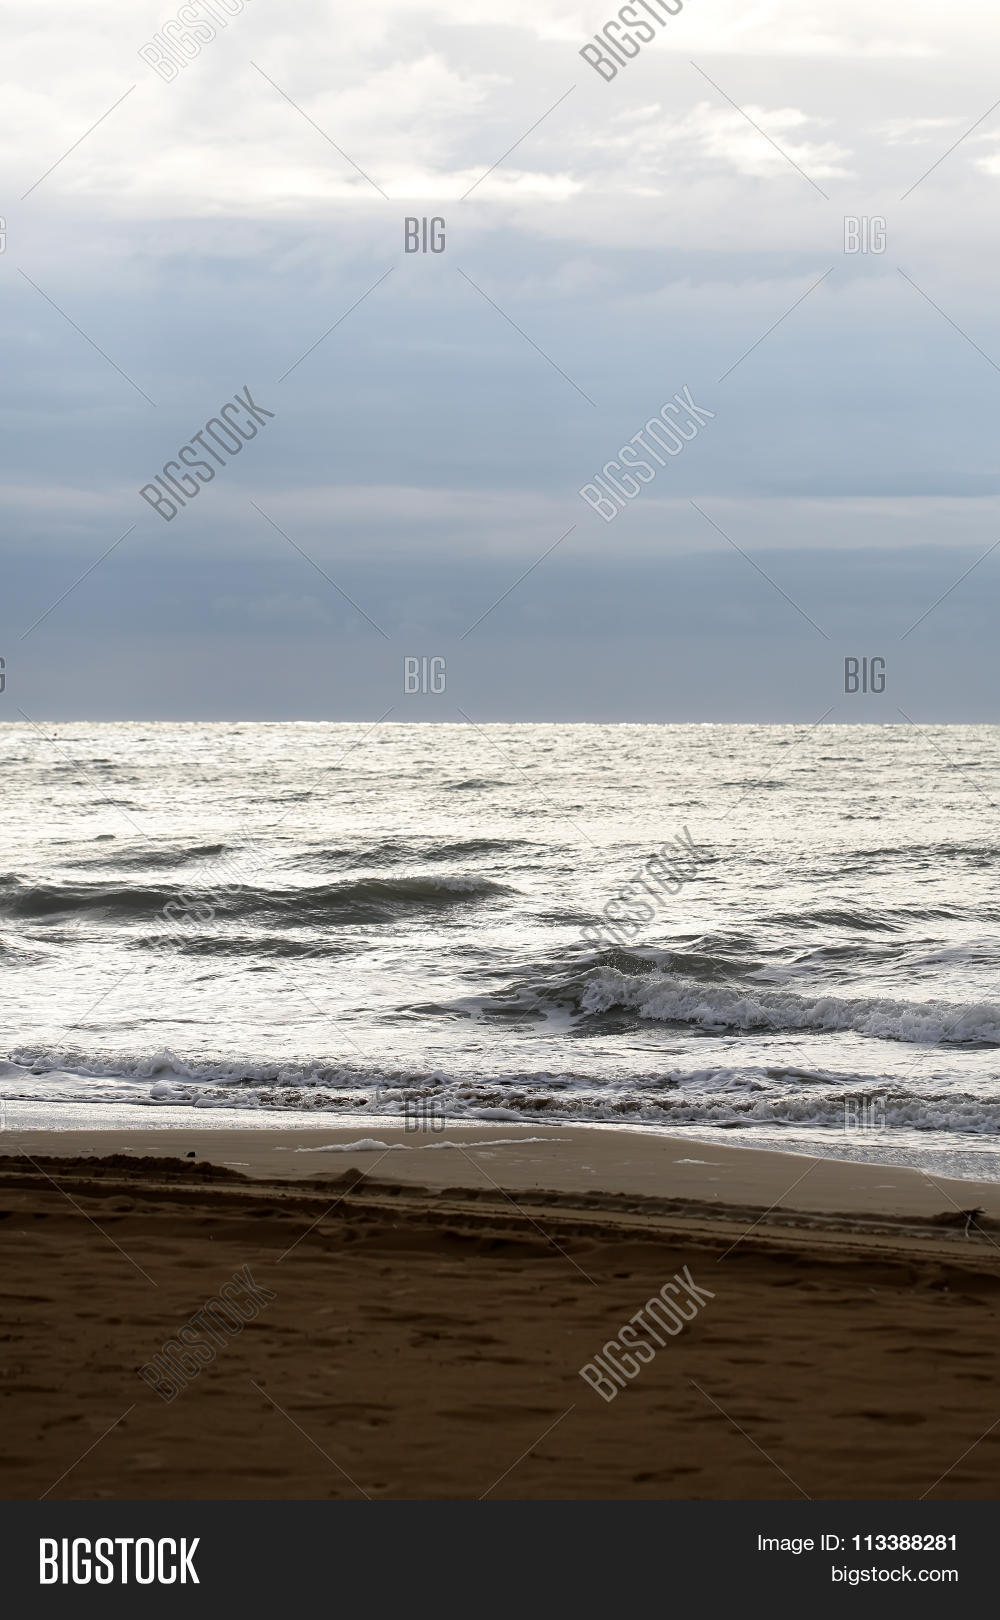 aqua,aquatic,background,beautiful,beige,clear,closeup,clouds,coastline,day,dull,ecology,empty,grey,hit,marine,marinorama,maritime,murky,nature,naval,no,nobody,ocean,offshore,people,photo,picture,ripples,salt,sand,sea,seascape,seashore,seaside,spindrifts,splashes,spoondrifts,surface,water,waterscape,waves,wet